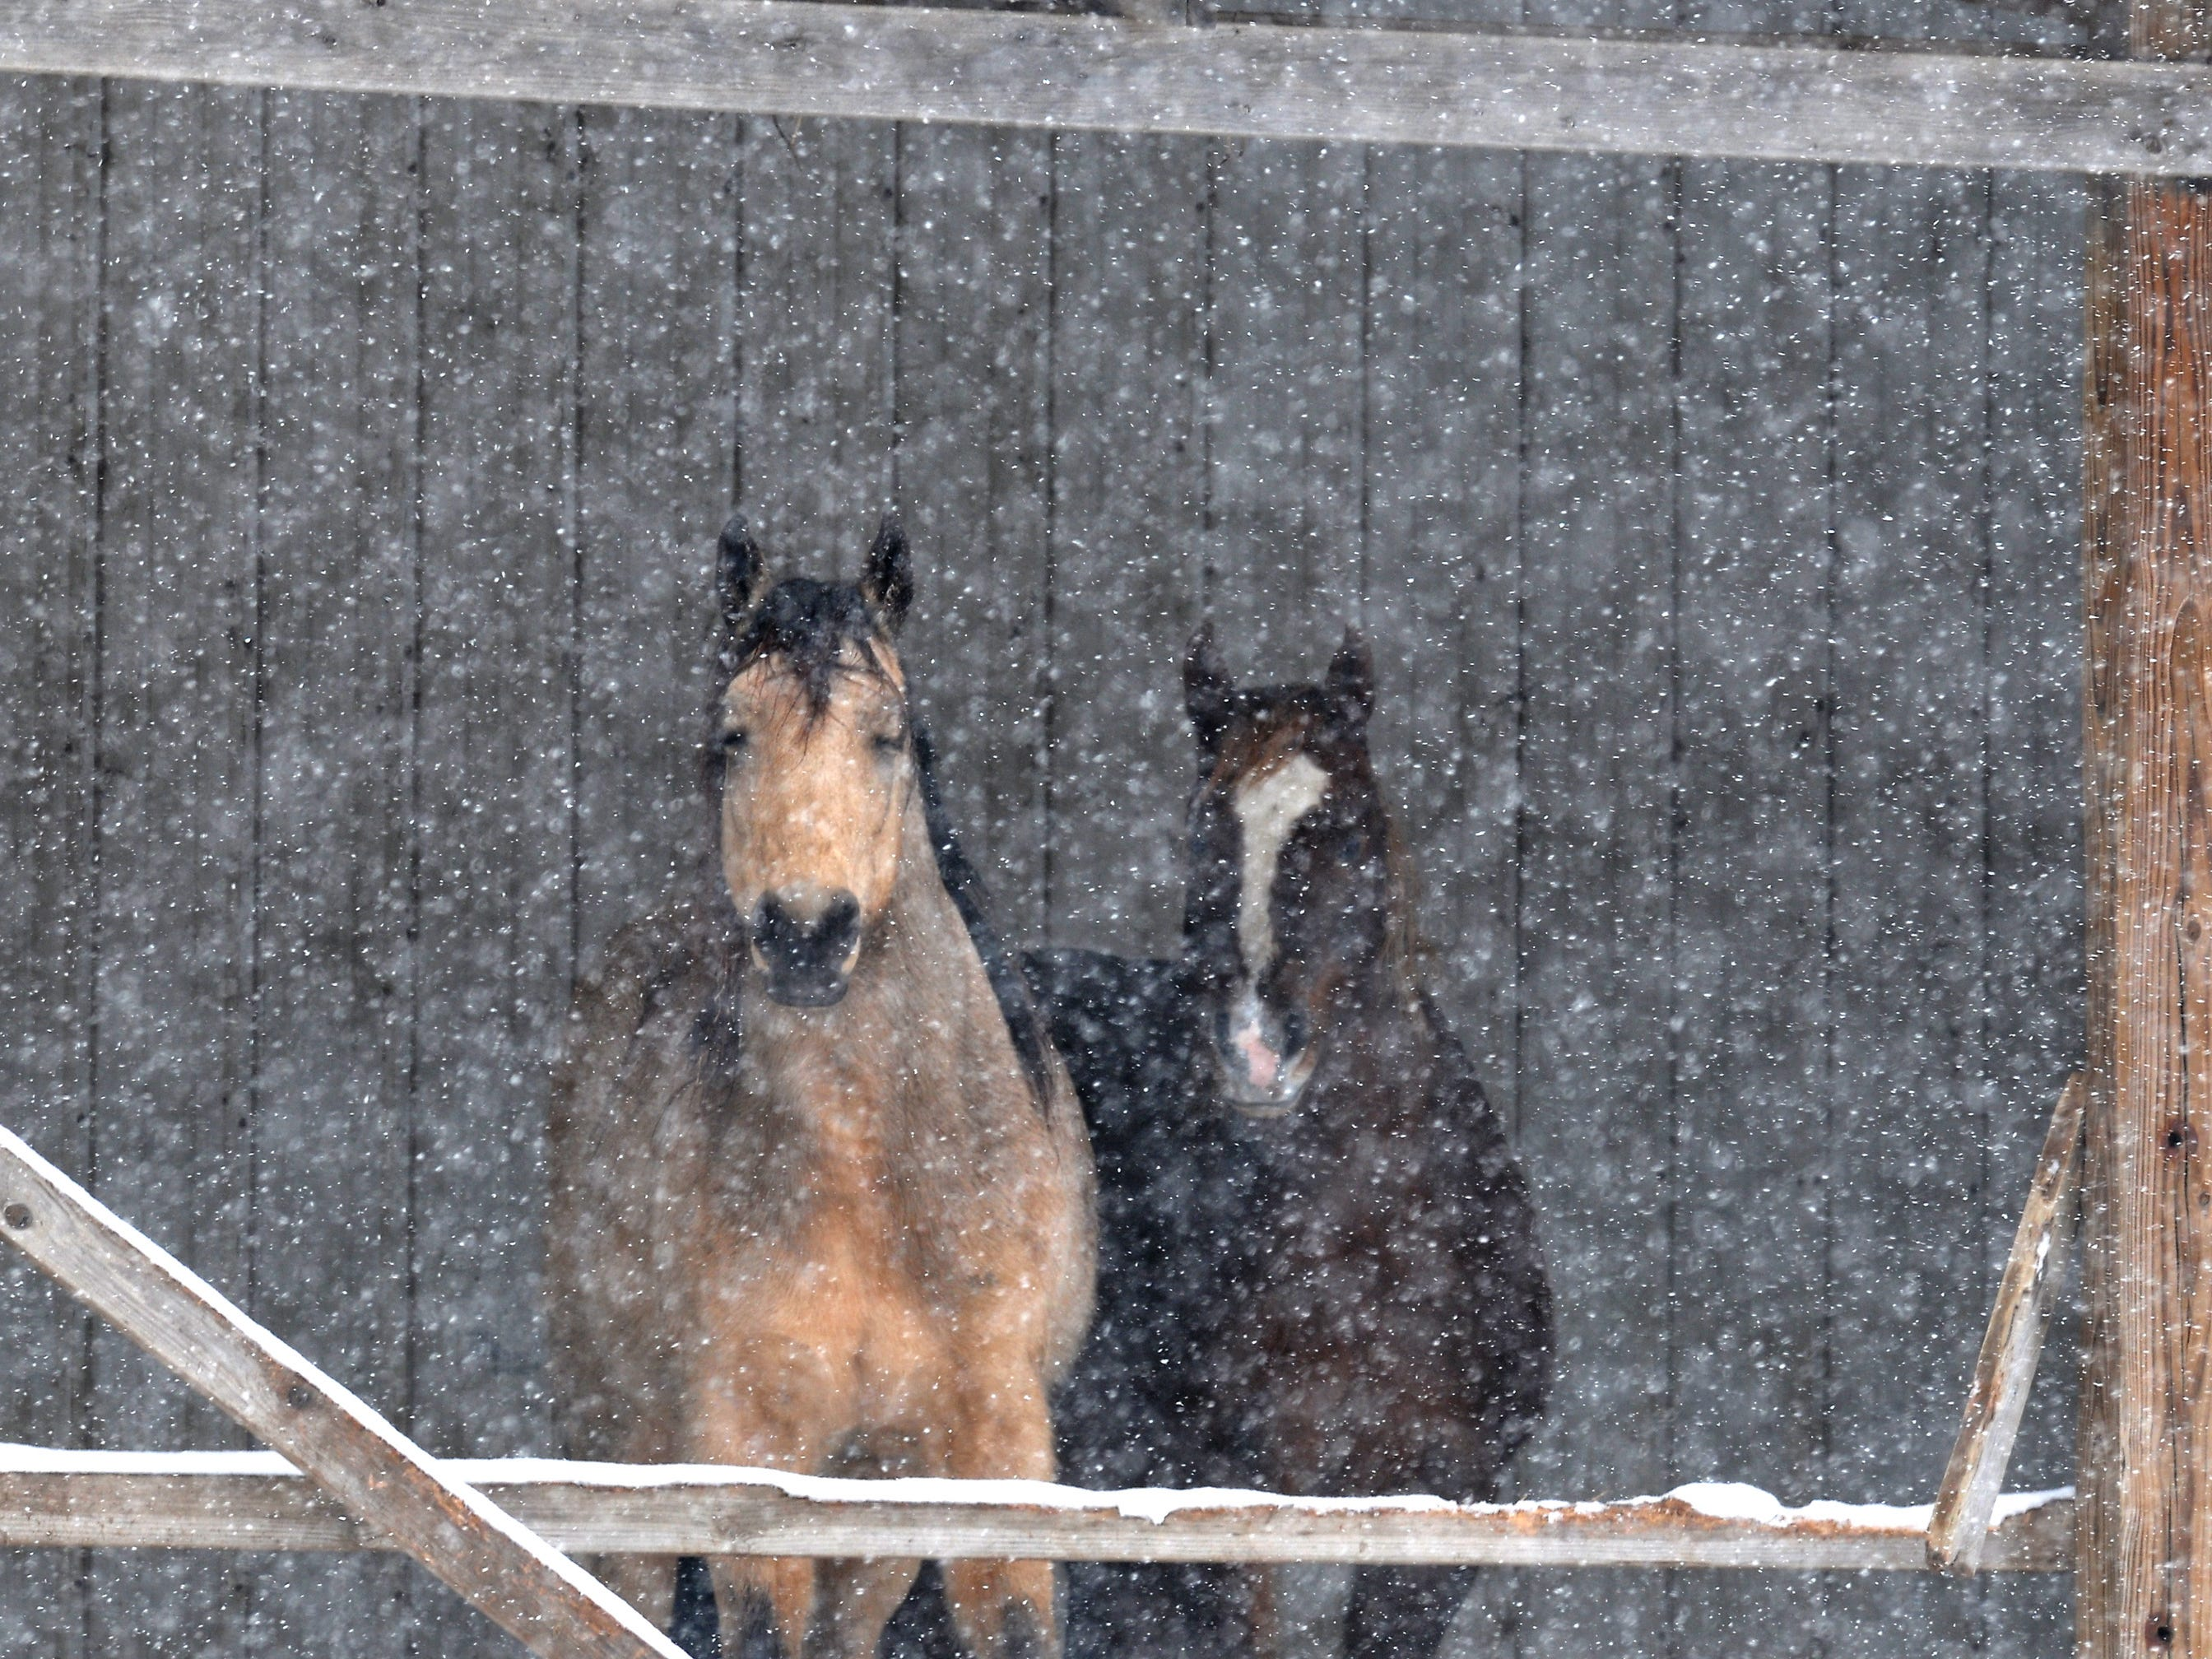 Horses watch the snow fall during a winter storm near New Virginia, Iowa on Jan. 12, 2019.